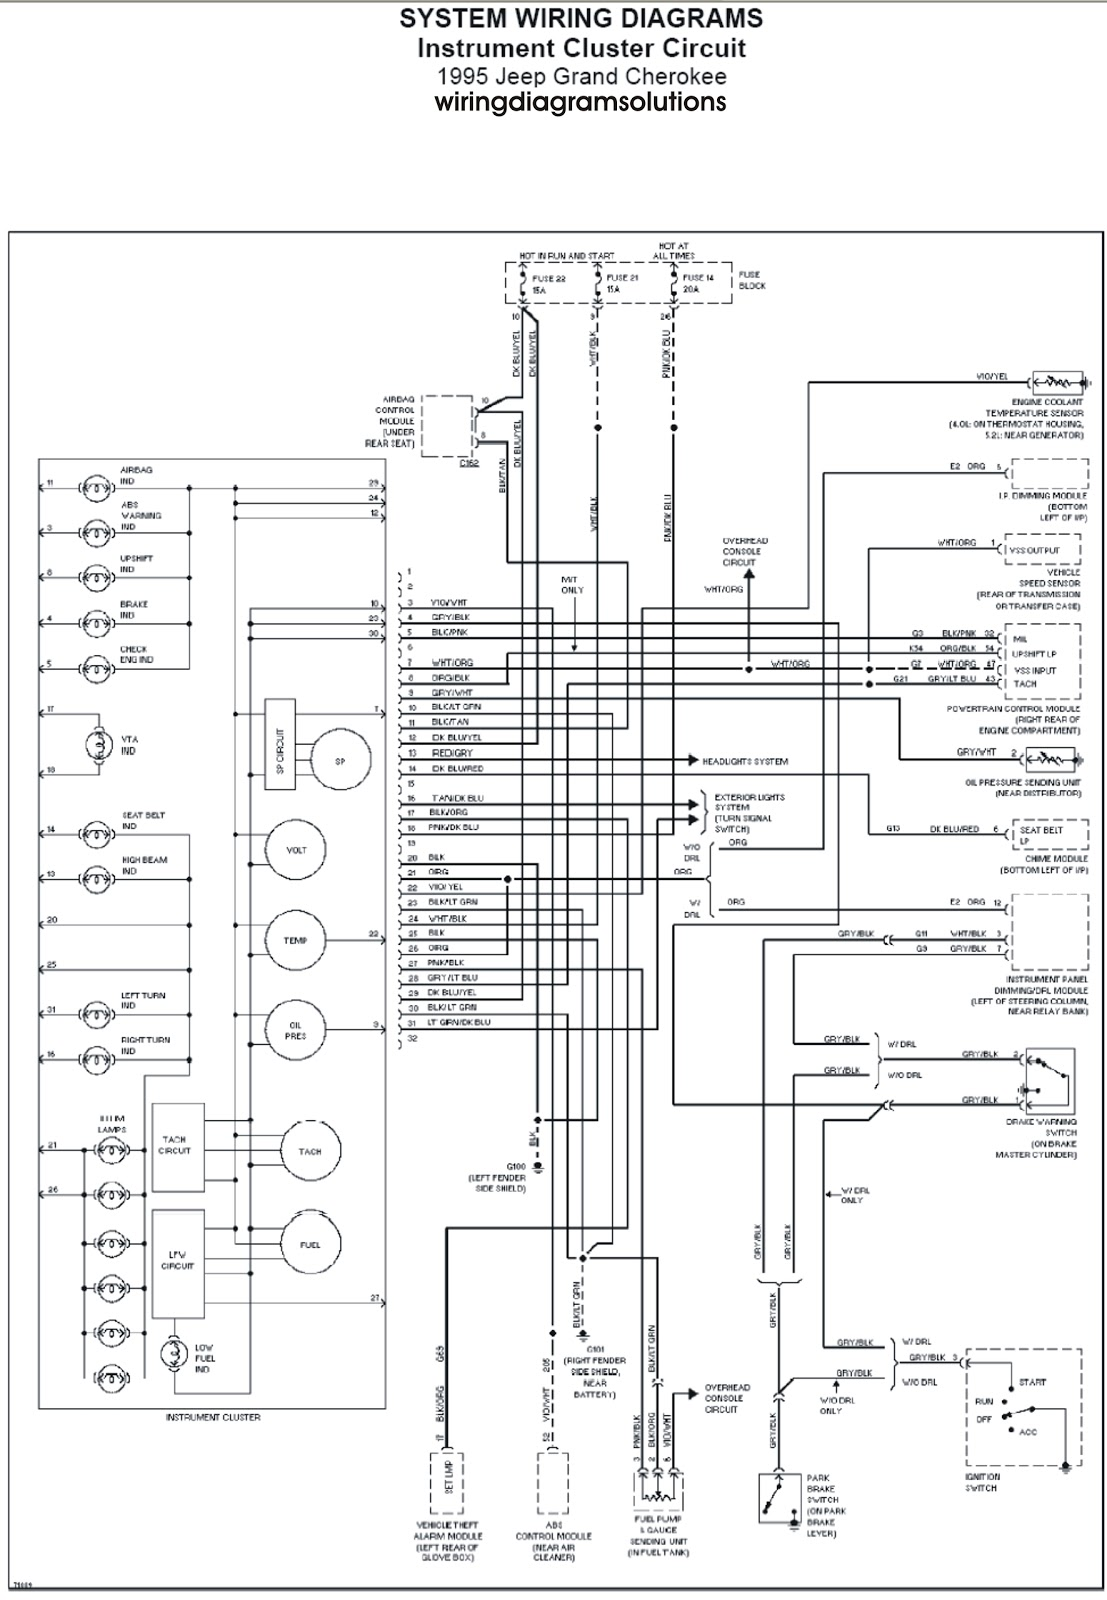 instrument+cluster+Circuit 95 jeep wiring diagram 28 images 1995 jeep wiring diagram 95 jeep wrangler wiring harness diagram at honlapkeszites.co